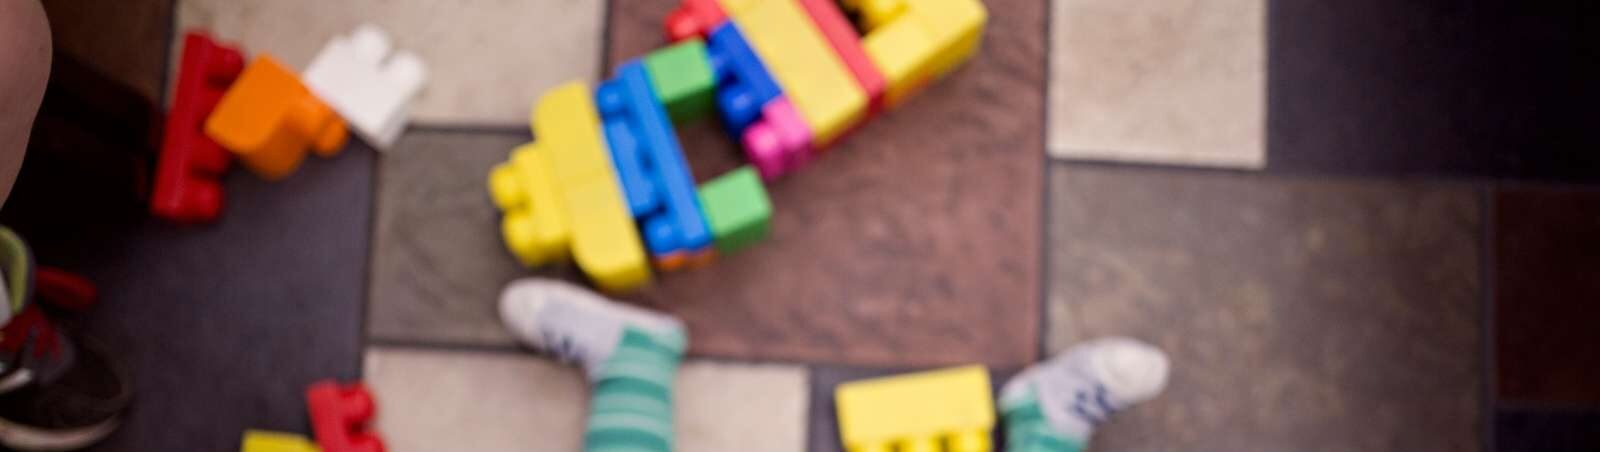 Poured-in-Place or Rubber Tiles: Which One's Ideal for Kids' Play Area?